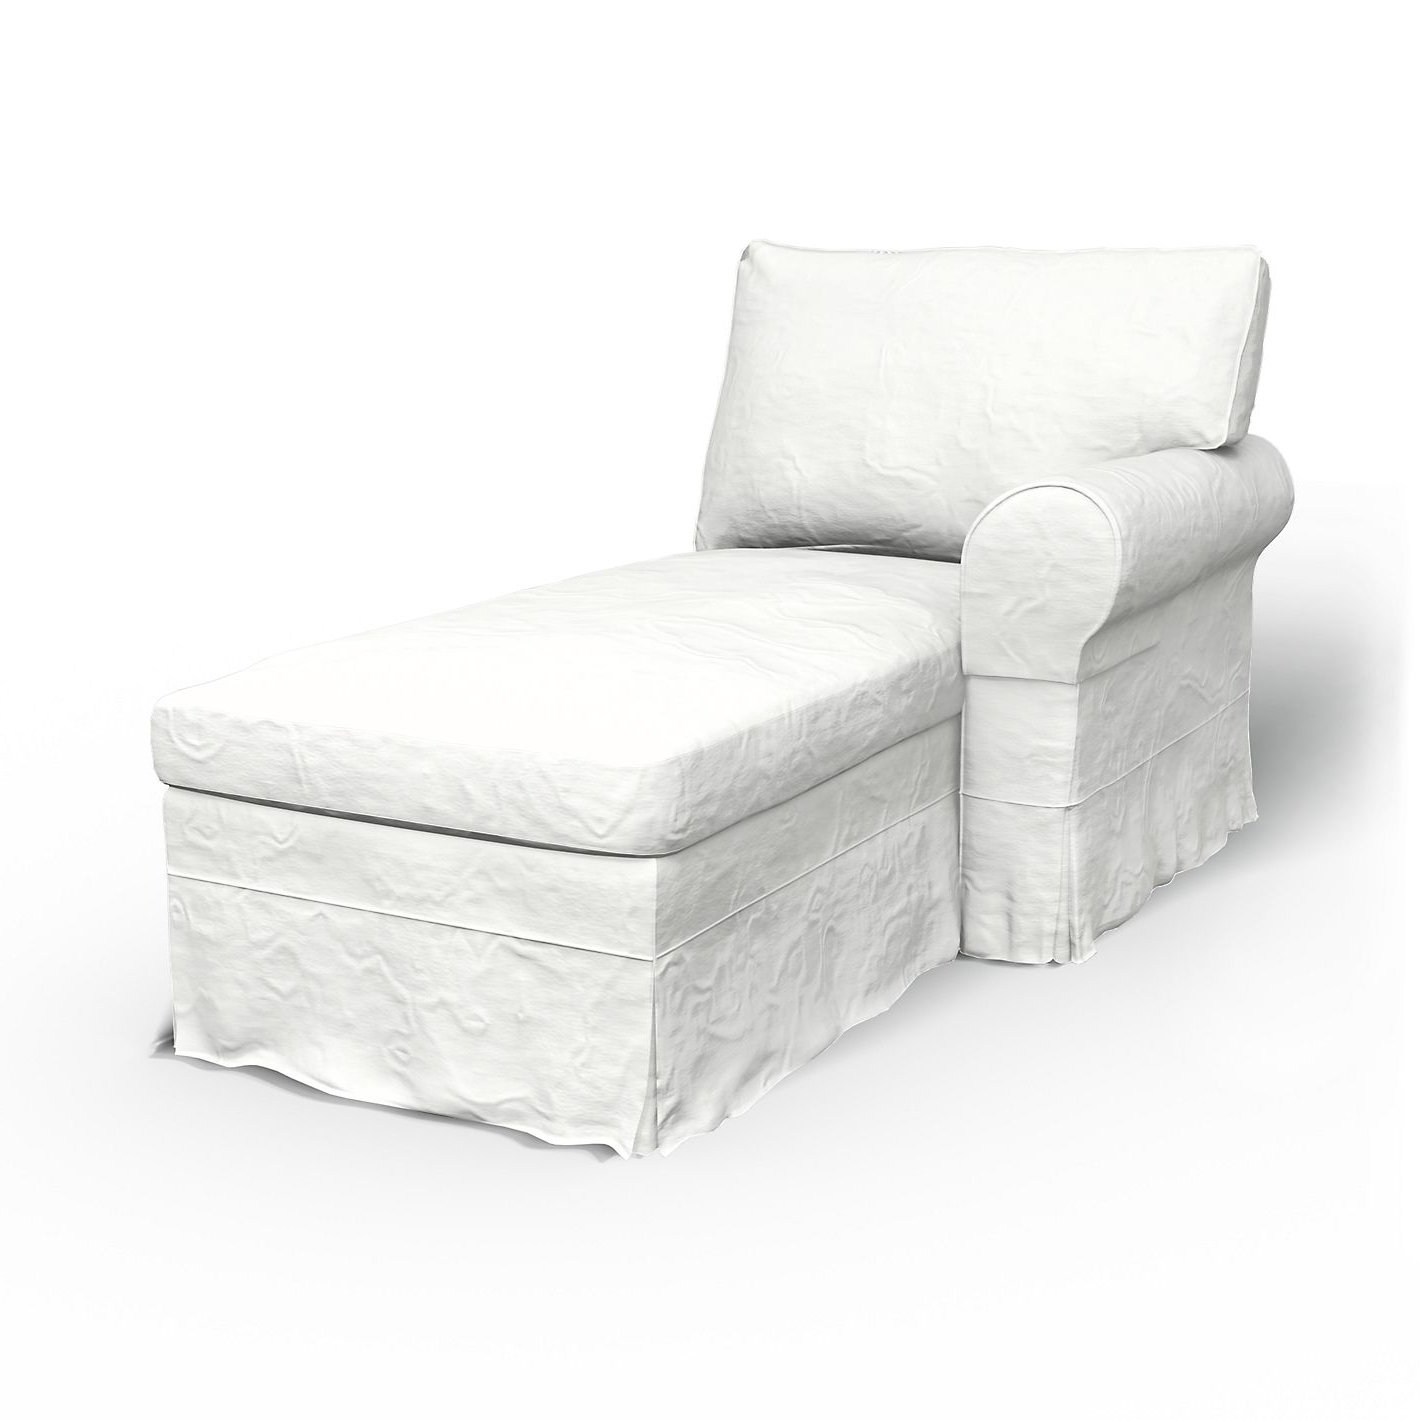 Cover For Chaise Lounge Chair • Lounge Chairs Ideas Throughout Well Known Chaise Lounge Slipcovers (View 8 of 15)